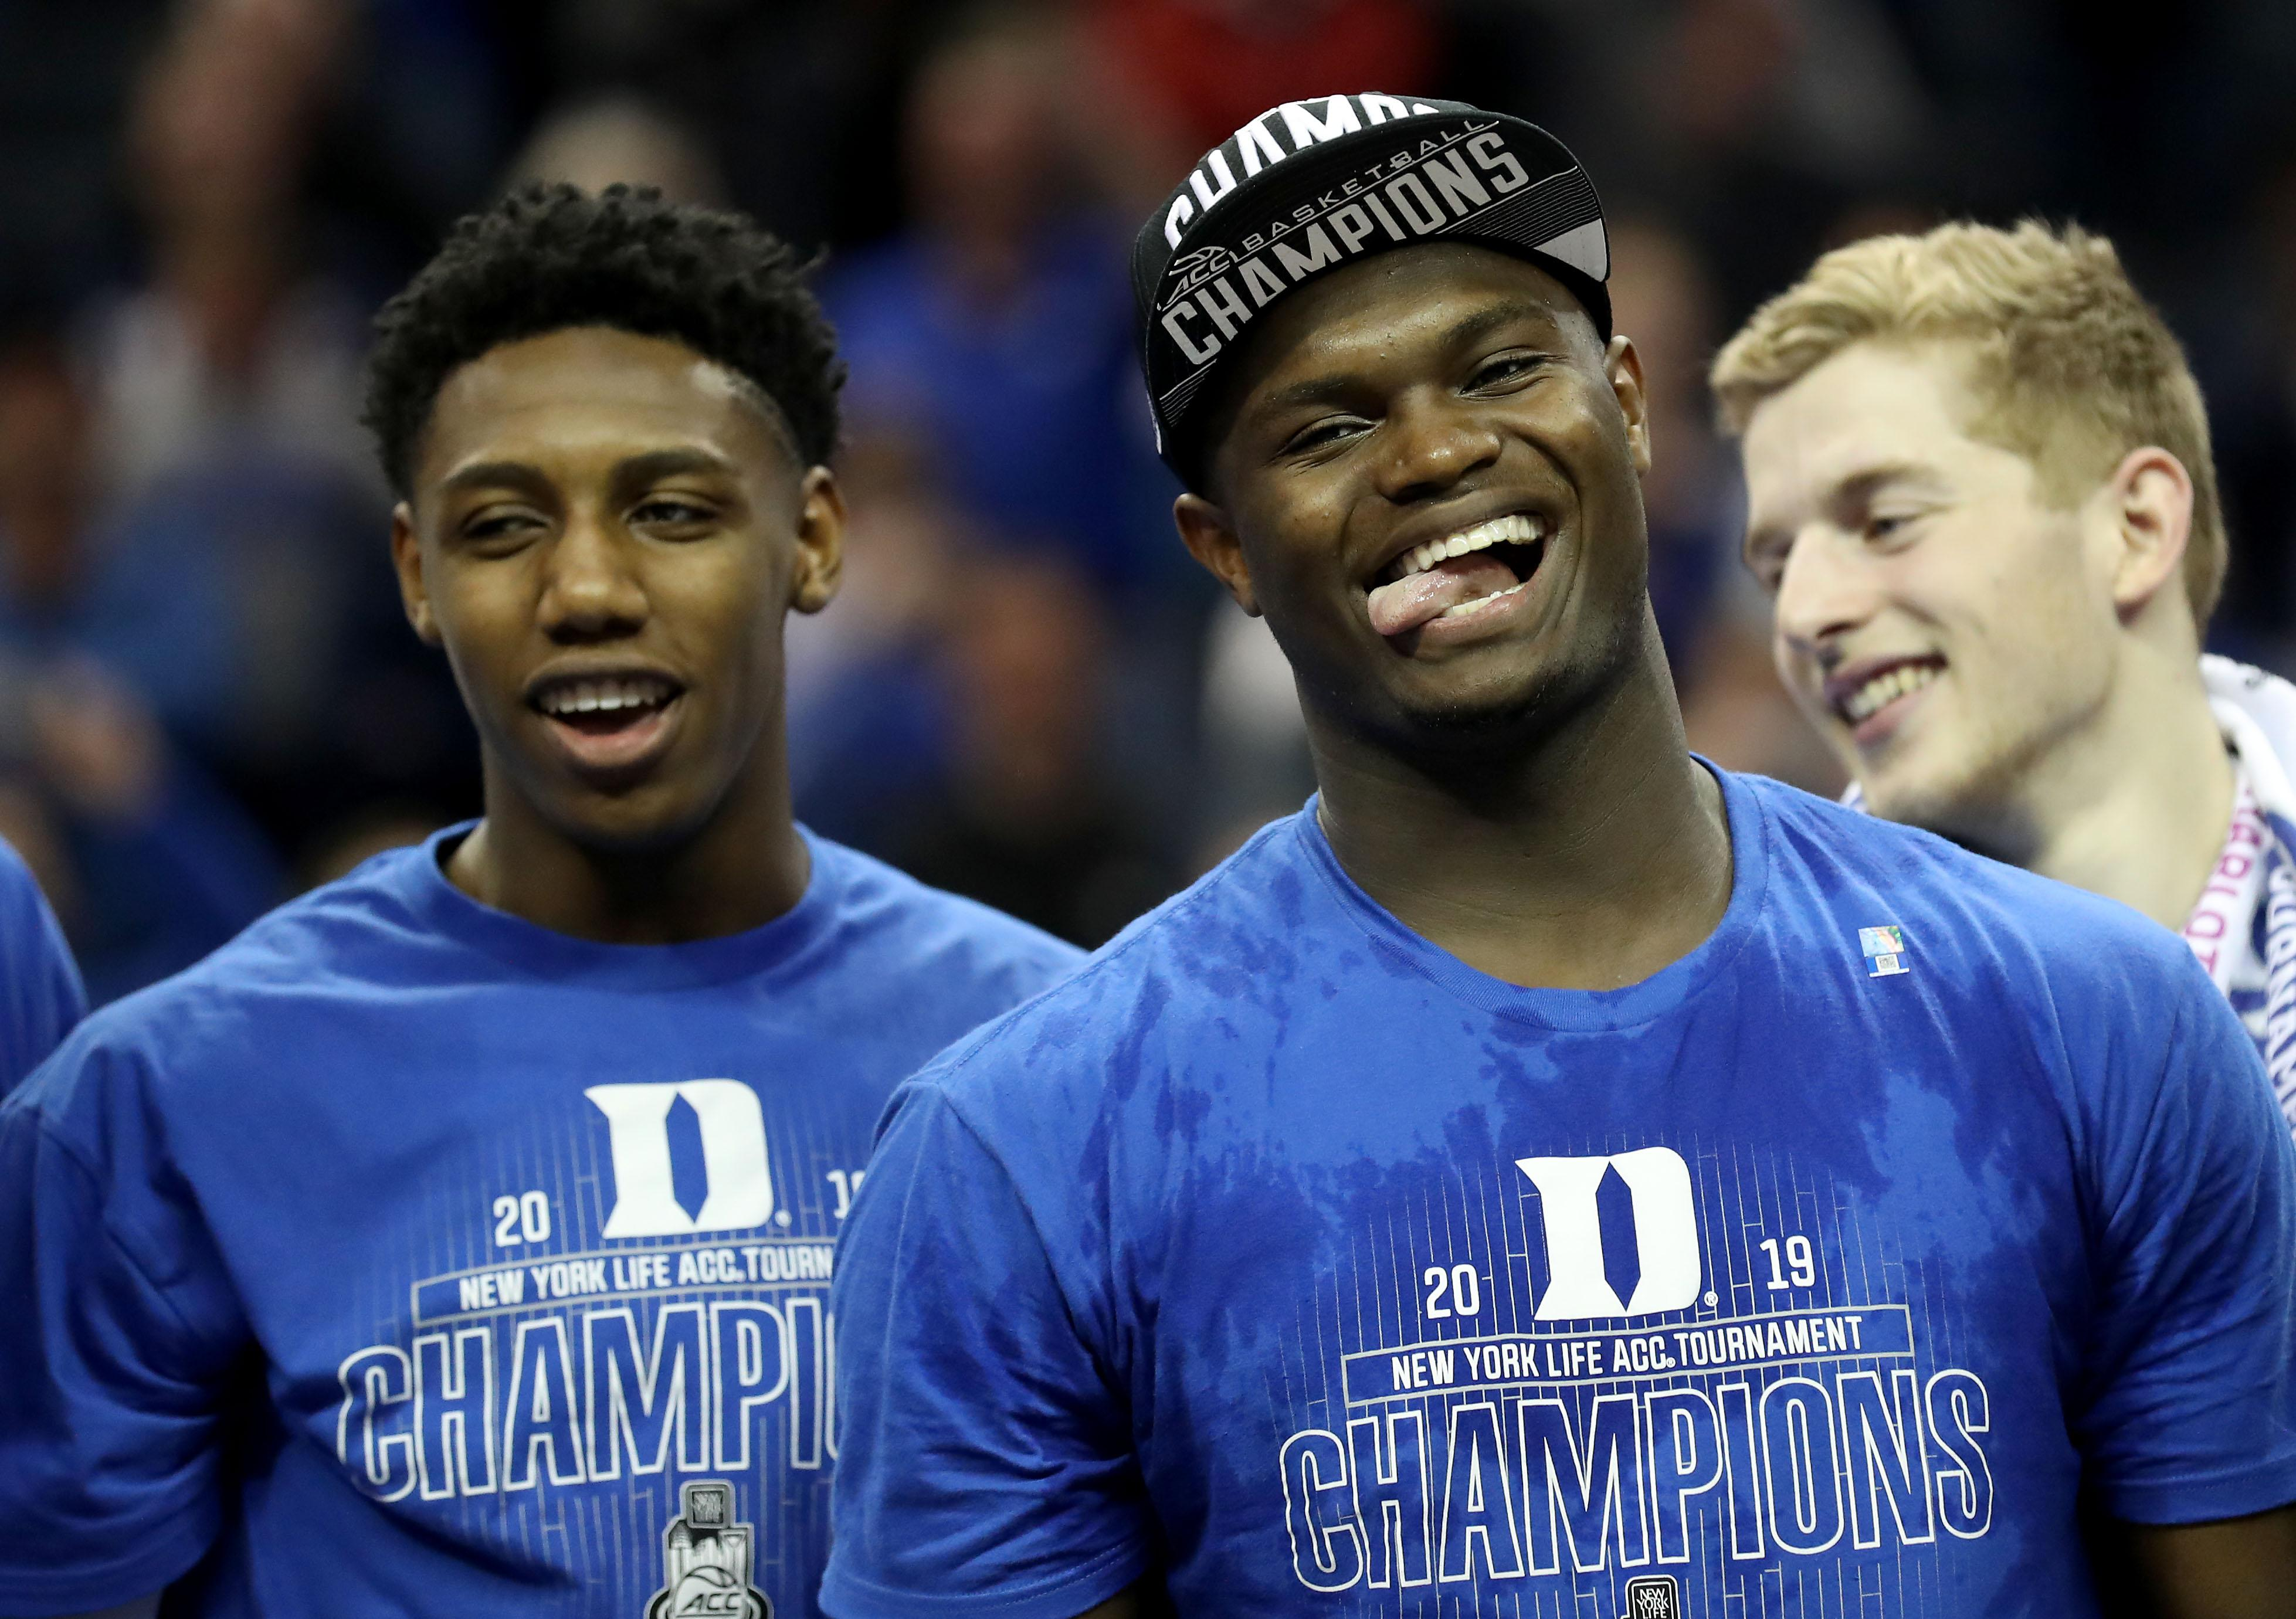 CHARLOTTE, NORTH CAROLINA - MARCH 16: Teammates RJ Barrett #5 and Zion Williamson #1 of the Duke Blue Devils react after defeating the Florida State Seminoles 73-63 in the championship game of the 2019 Men's ACC Basketball Tournament at Spectrum Center on March 16, 2019 in Charlotte, North Carolina. (Photo by Streeter Lecka/Getty Images)